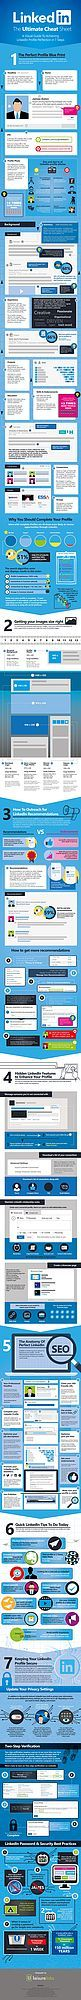 You've got six seconds to impress a recruiter on LinkedIn, and once you reel them in, you want to make sure your profile is solid. This giant visual guide tells you the basics of what you need to know